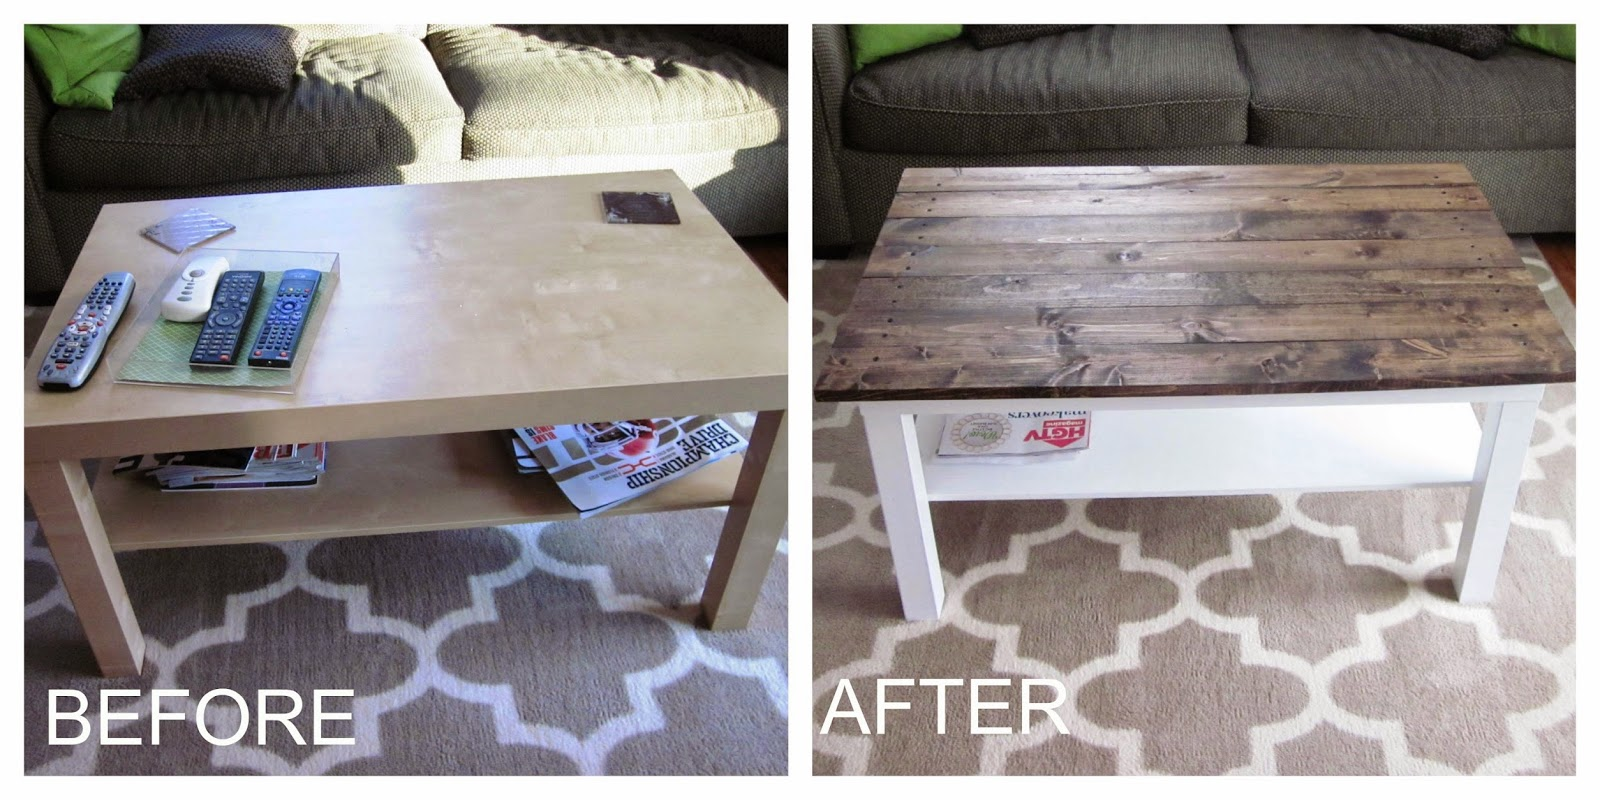 Bon Itu0027s A Long Story: Coffee Table Makeover: Wood Plank Table Top (Ikea Hack)